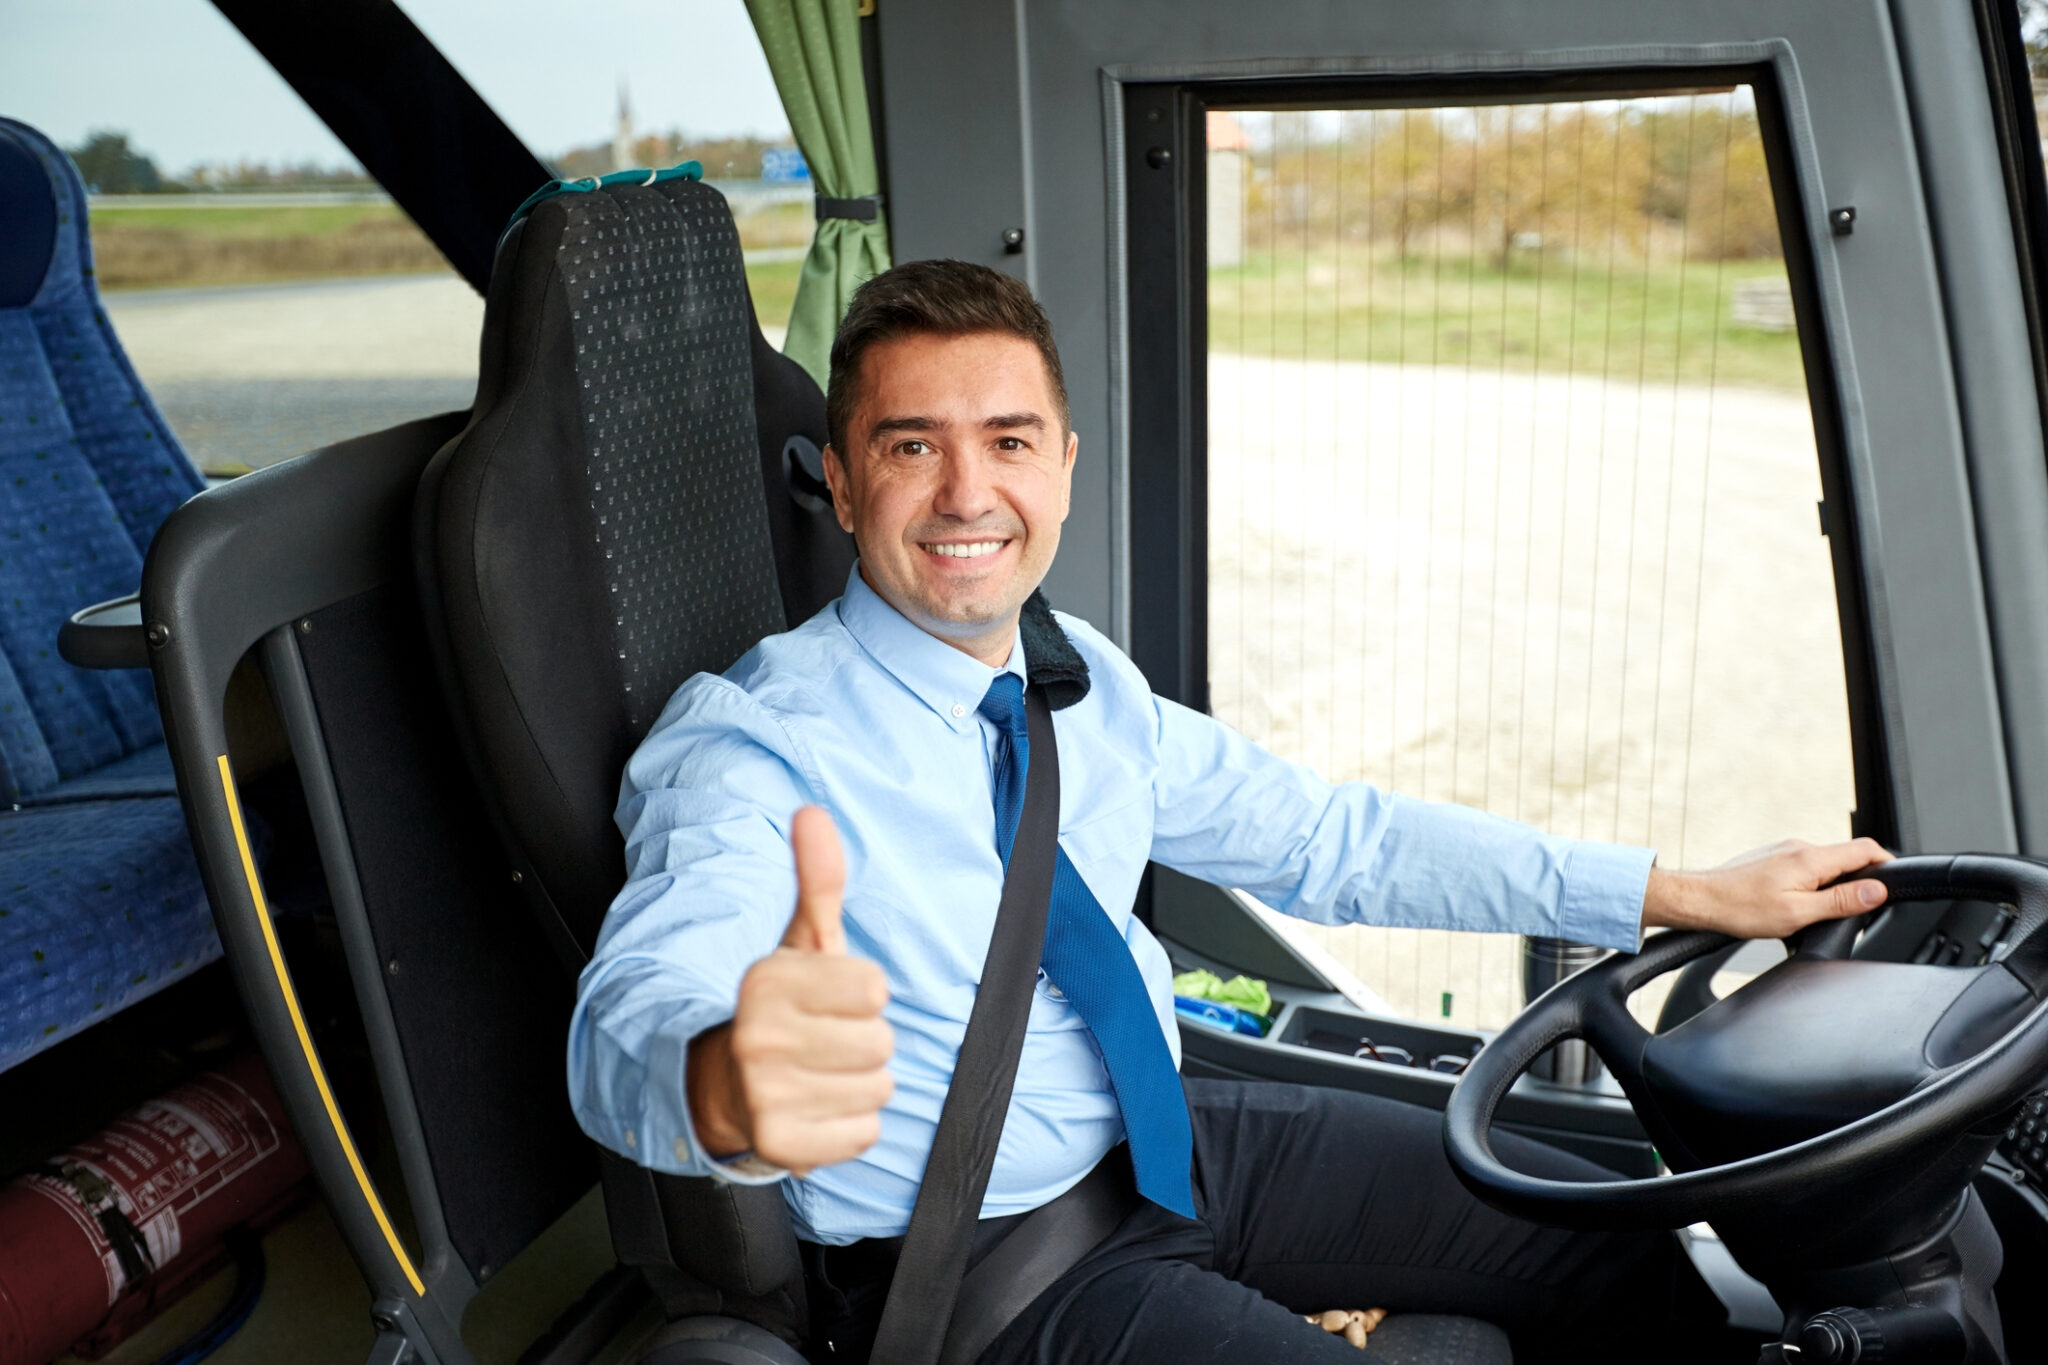 happy driver driving intercity bus and snowing thumbs up